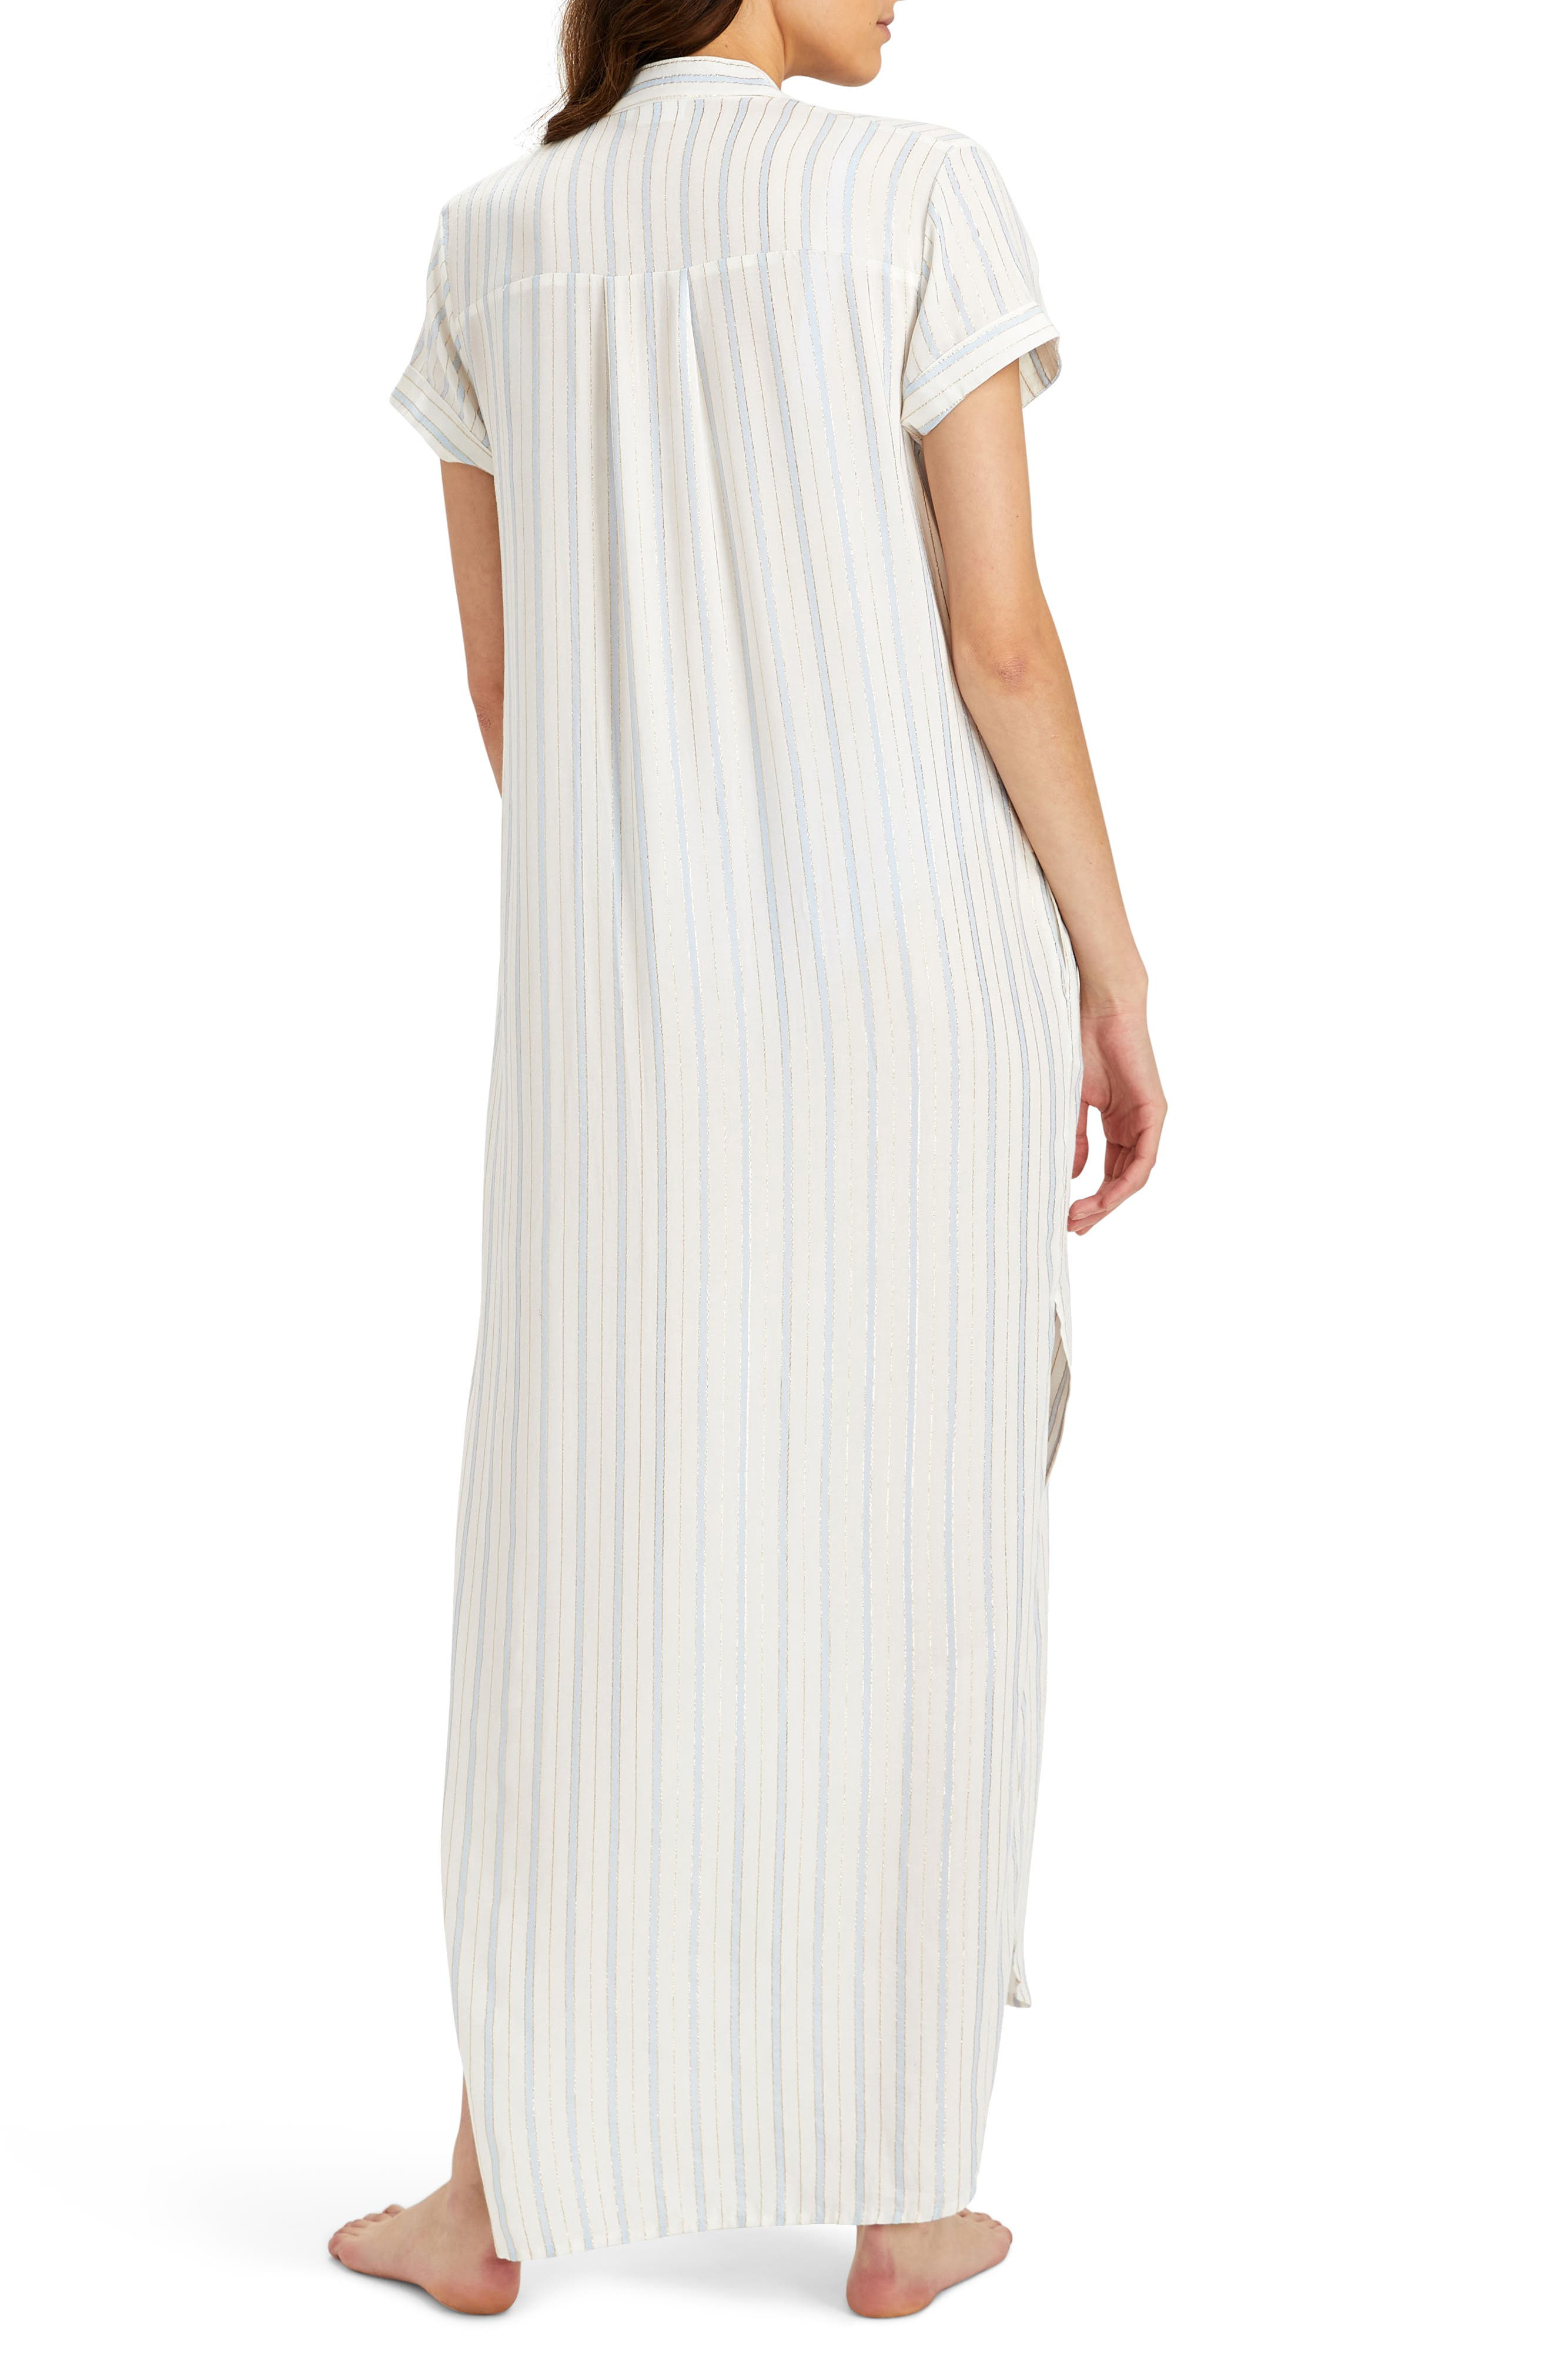 Alternate Image 2  - Onia Kim Stripe Button Down Cover-Up Maxi Dress